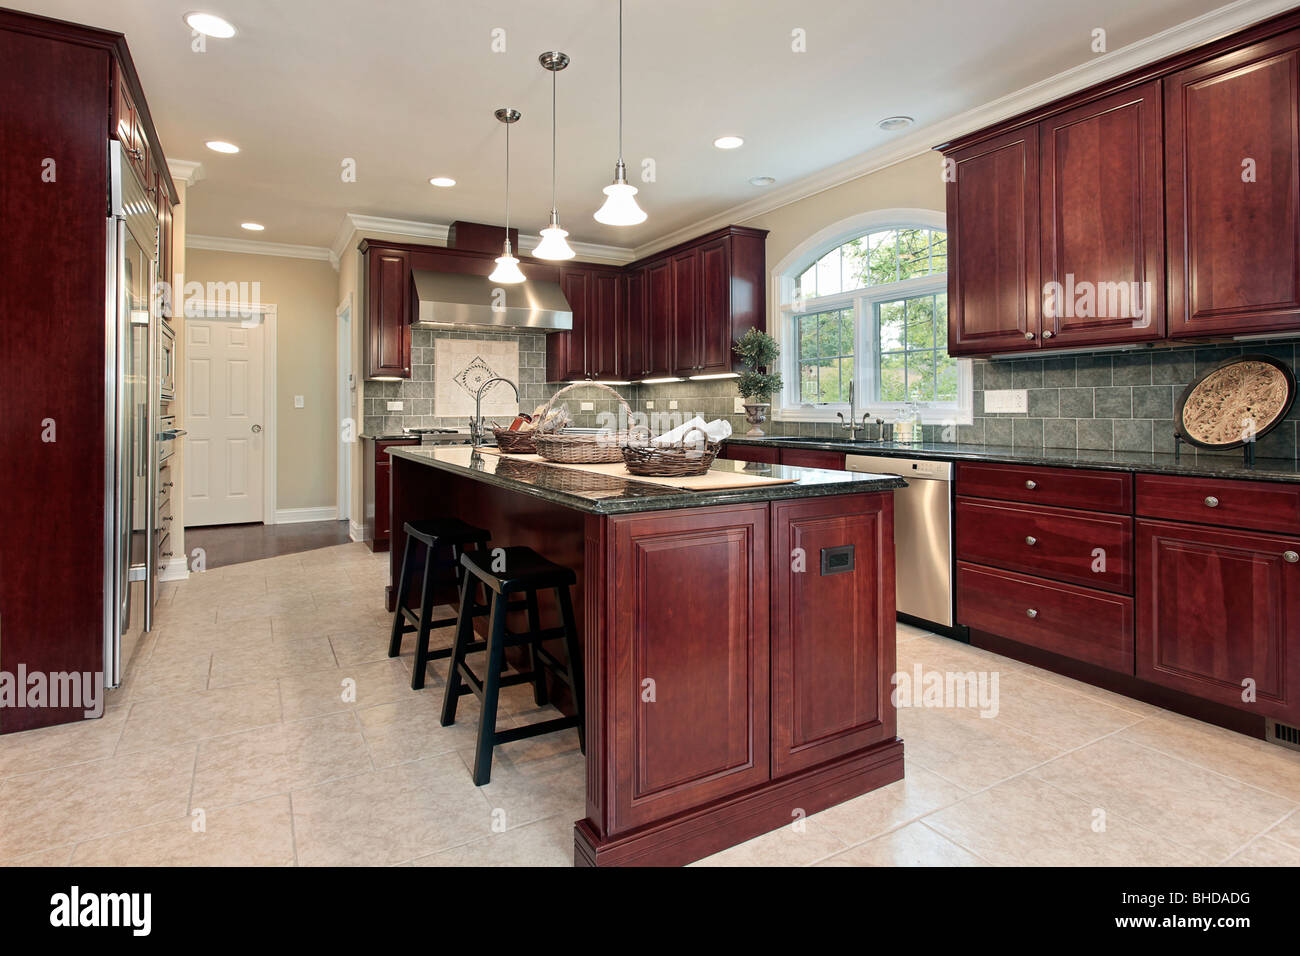 Kitchen in luxury home with cherry wood cabinetry Stock ...